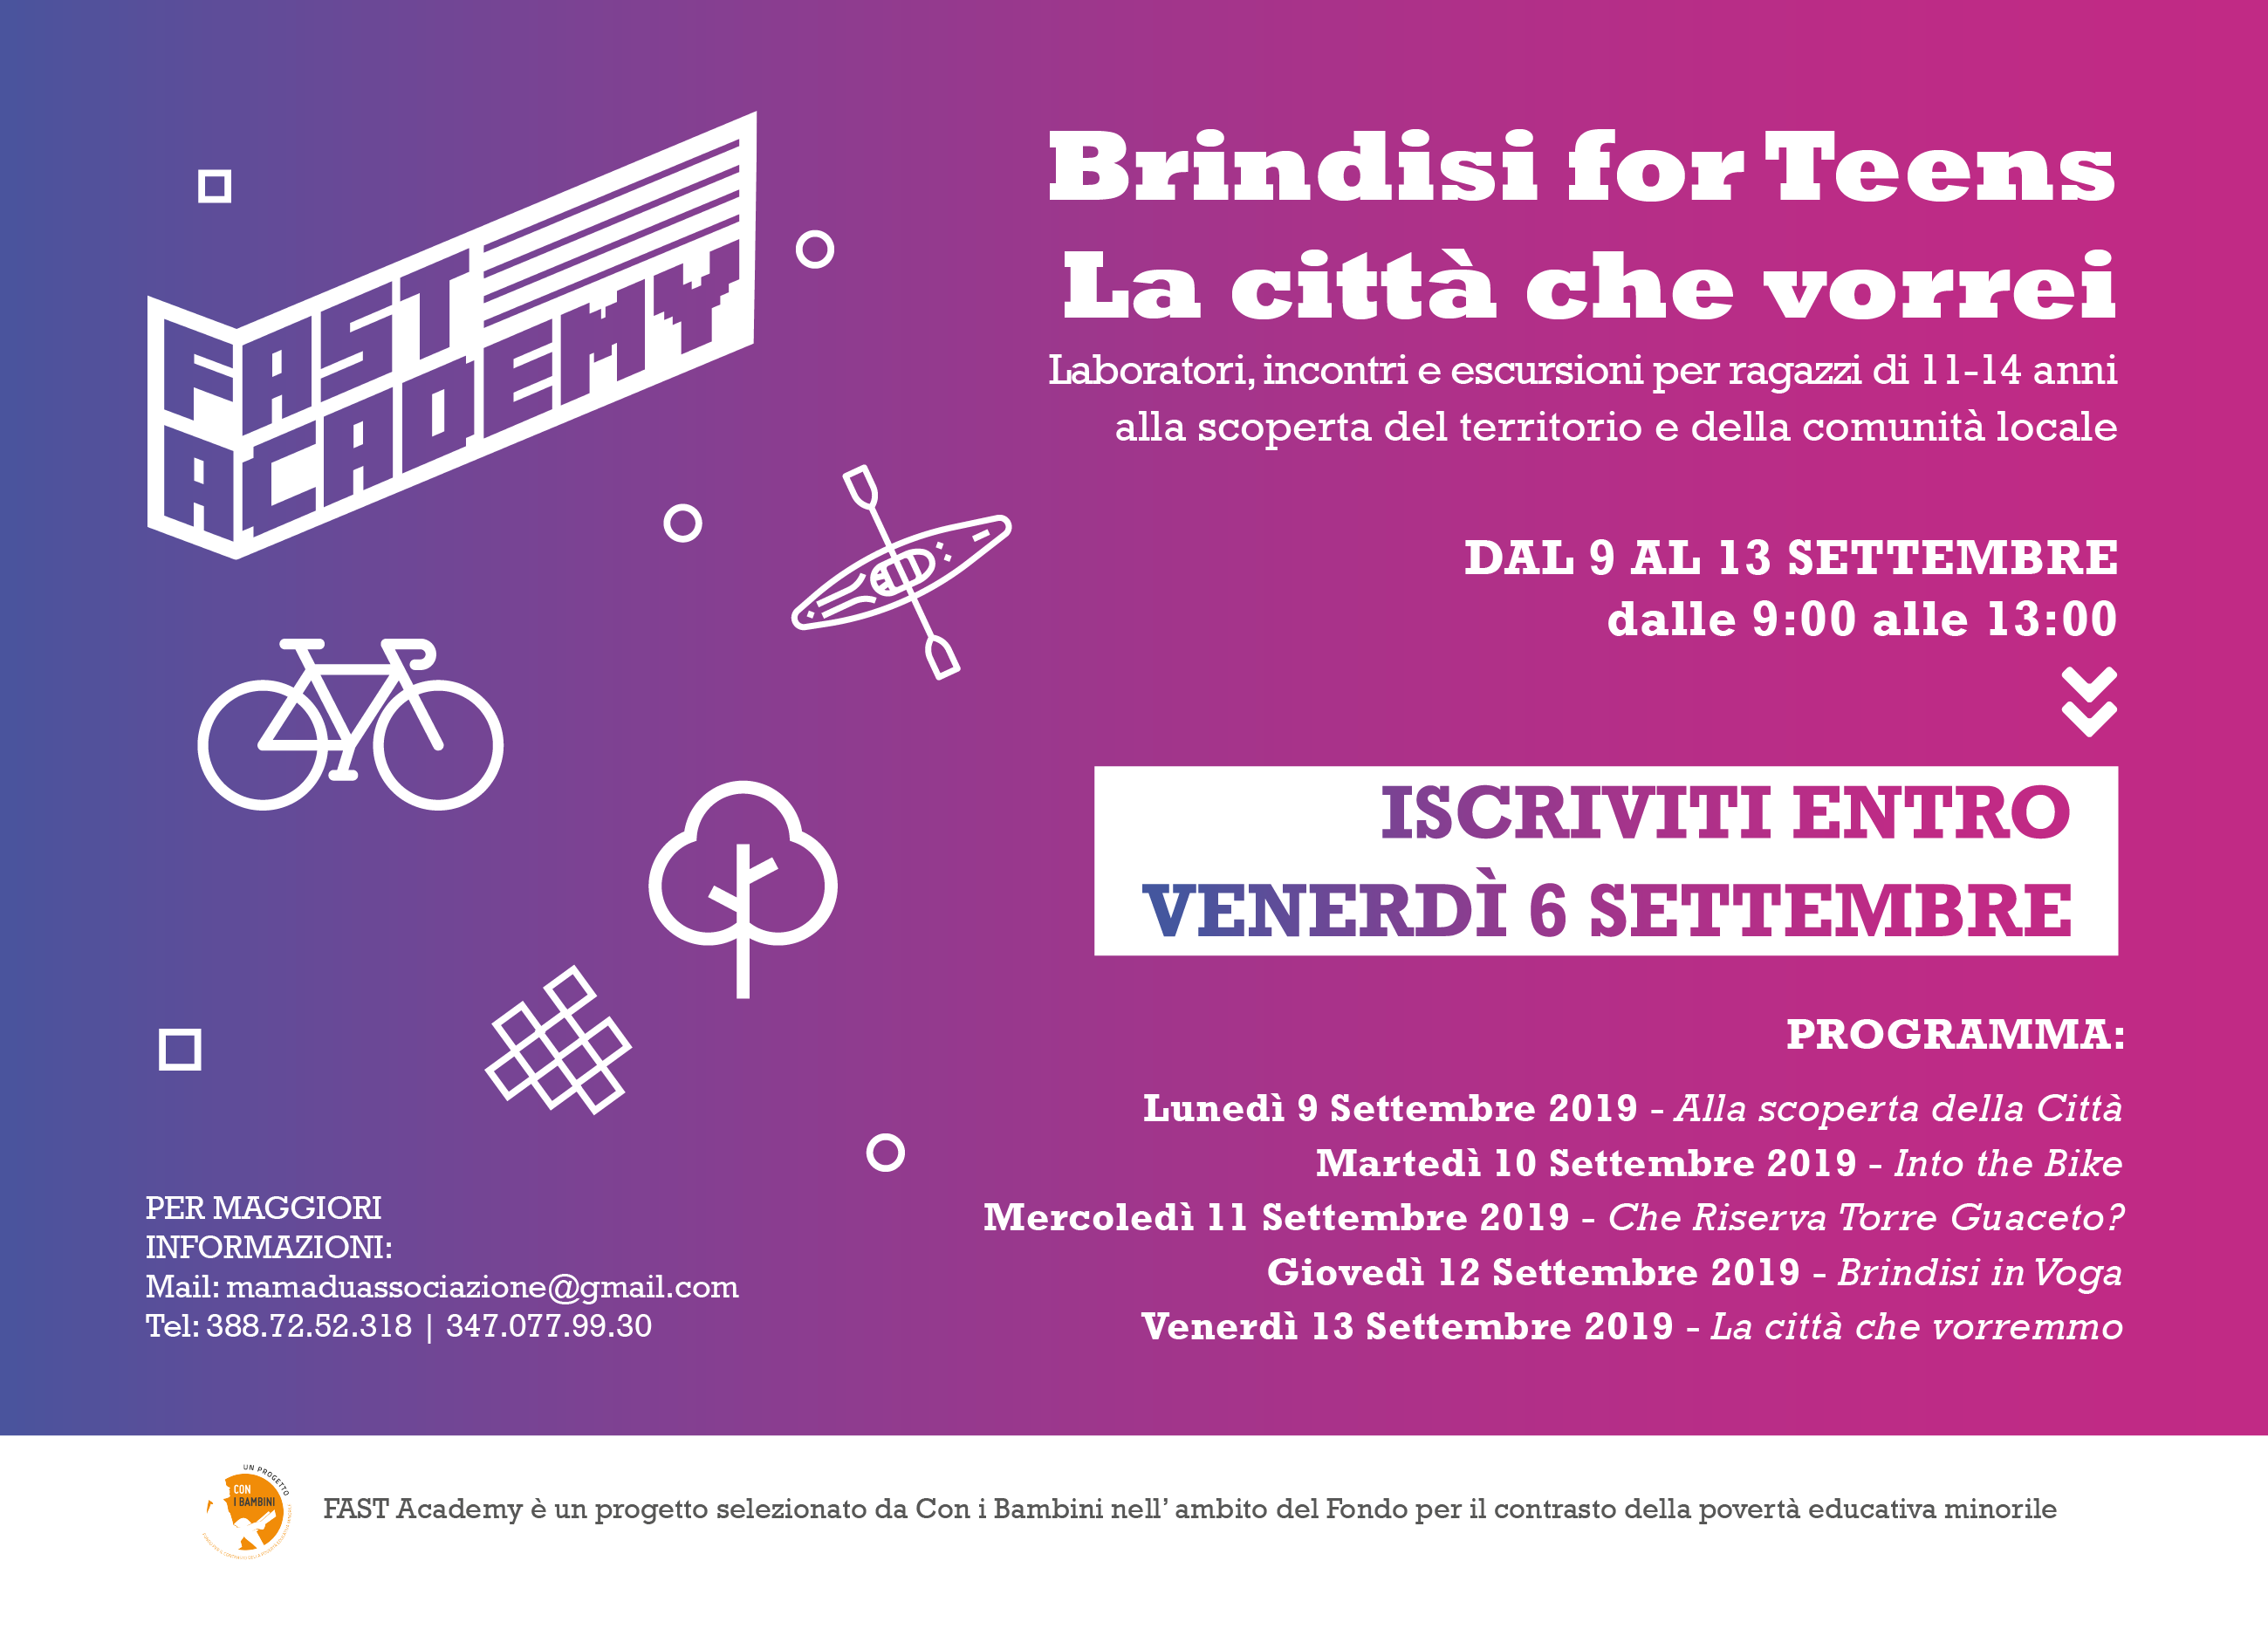 fast-academy-brindisi-for-teens